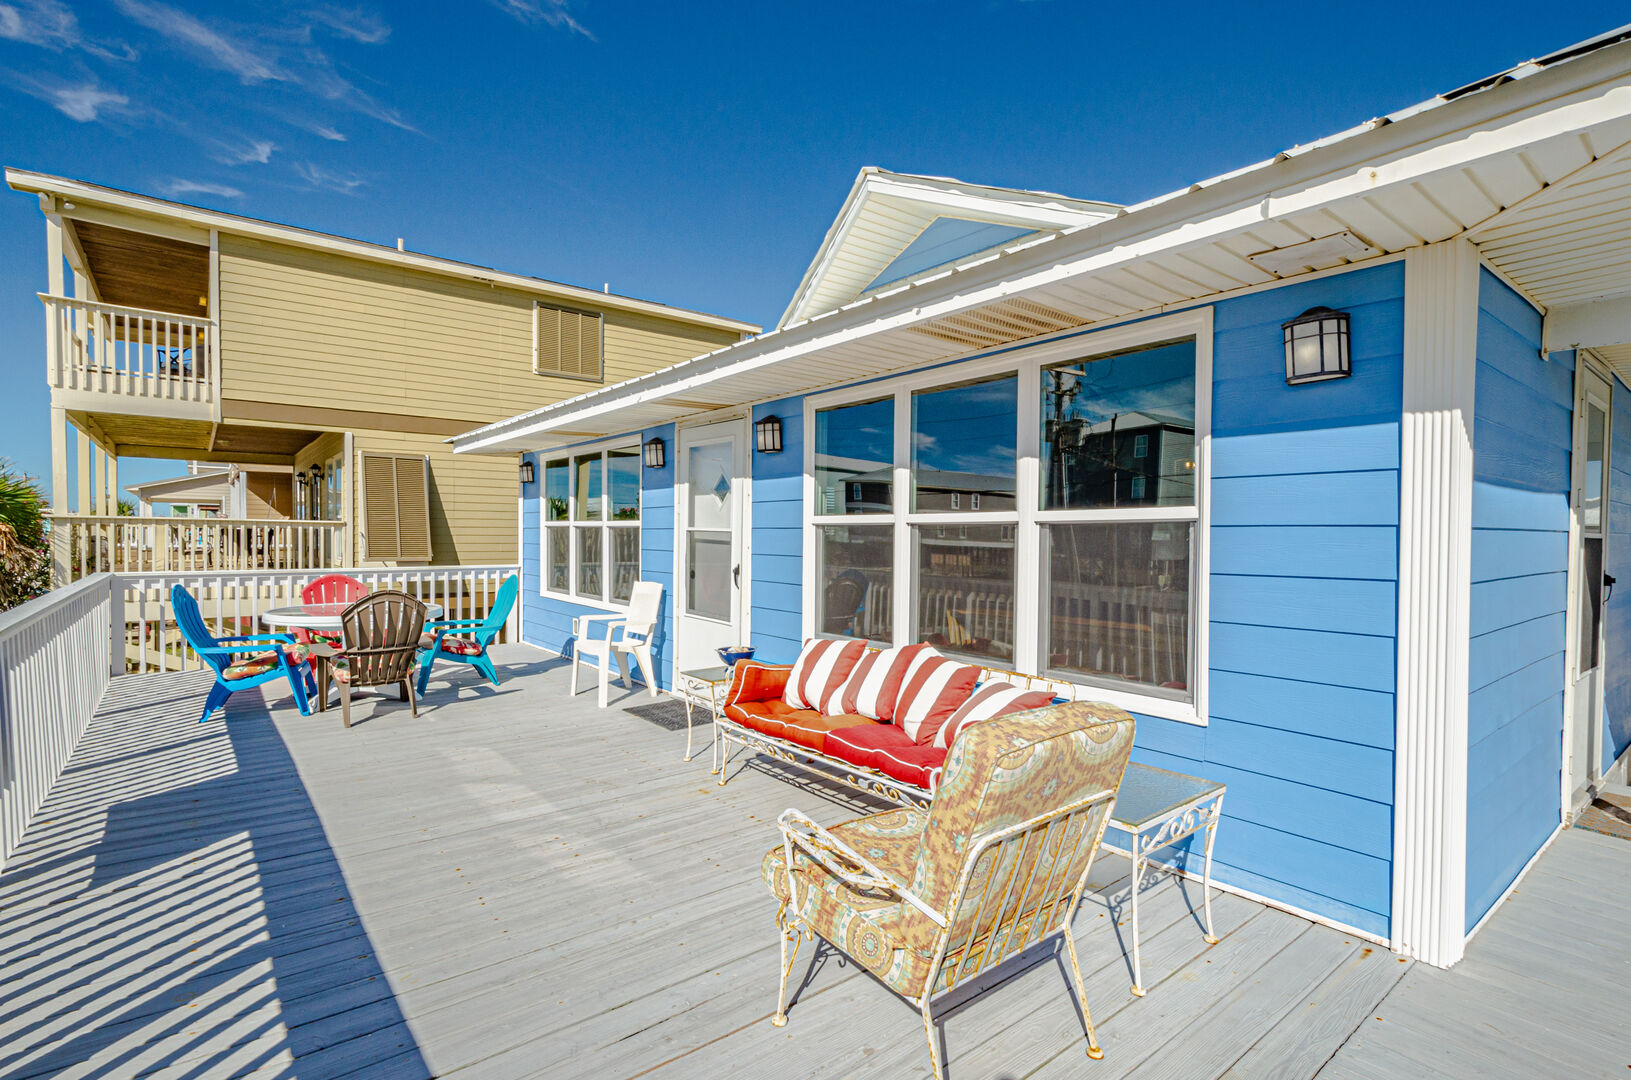 Porch and seating of this Gulf Shores Beach House Rental, with the homes bright blue paint job visible.